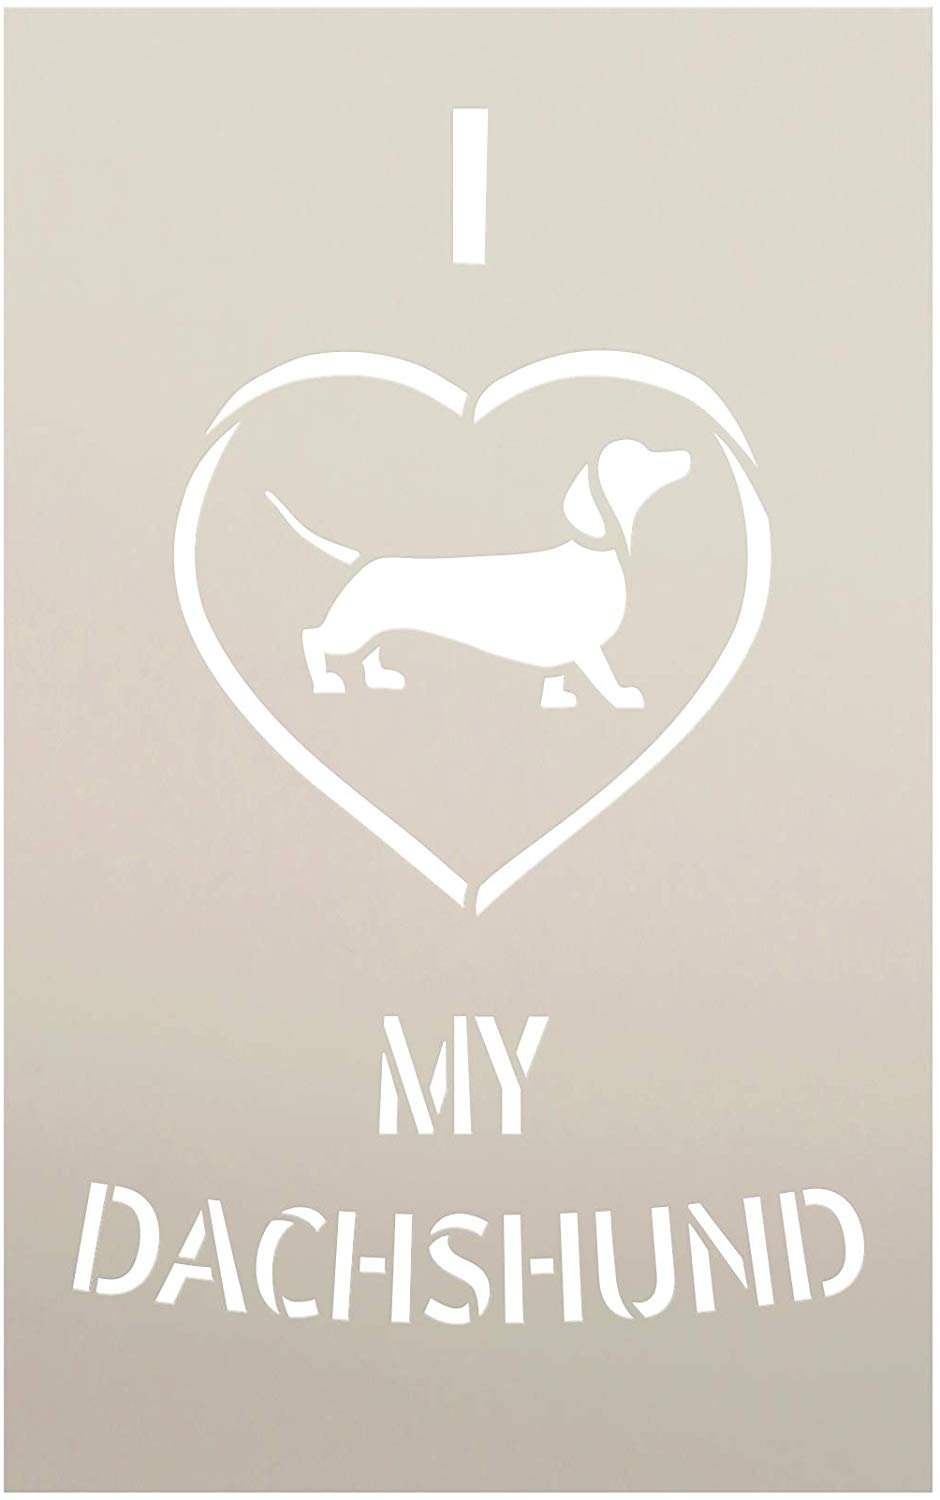 I Heart My Dachshund Stencil by StudioR12 | Reusable Mylar Template | Paint Wood Sign | Craft Dog Breed Animal Lover Gift - Family - Friends | DIY Pet Home Decor | Select Size